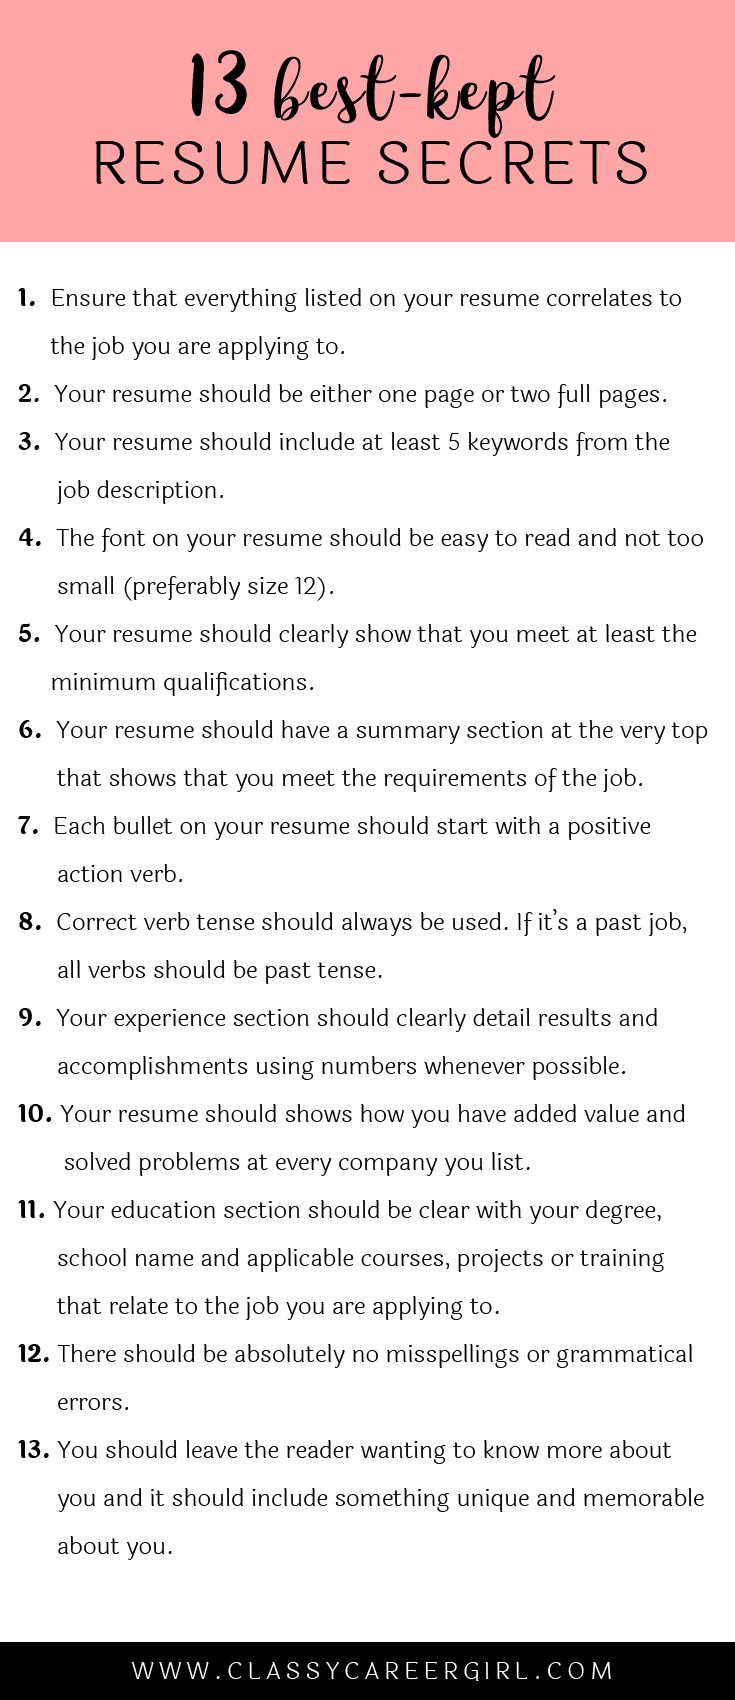 Opposenewapstandardsus  Unusual  Ideas About Resume On Pinterest  Cv Format Resume Cv And  With Outstanding Some Hiring Managers Will Toss Your Resume Out If You Dont Know These  With Extraordinary Entry Level Resume Examples Also Resume And Cover Letter In Addition Cosmetology Resume And  Page Resume As Well As Maintenance Resume Additionally Resume Outlines From Pinterestcom With Opposenewapstandardsus  Outstanding  Ideas About Resume On Pinterest  Cv Format Resume Cv And  With Extraordinary Some Hiring Managers Will Toss Your Resume Out If You Dont Know These  And Unusual Entry Level Resume Examples Also Resume And Cover Letter In Addition Cosmetology Resume From Pinterestcom